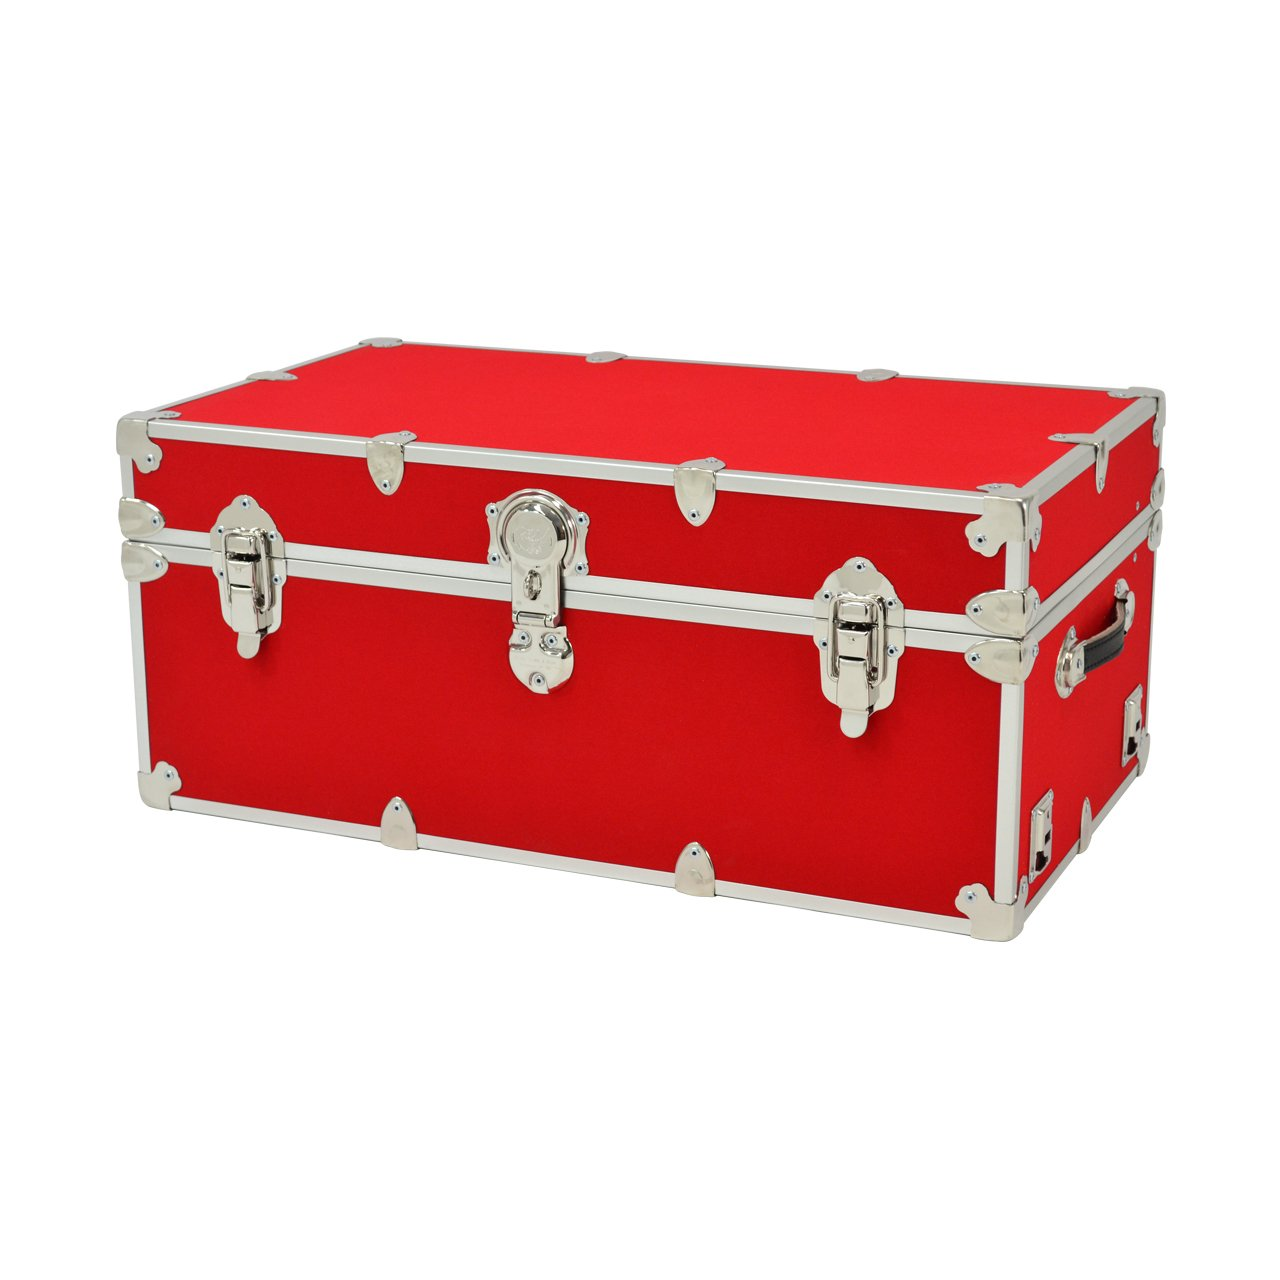 Rhino Trunk and Case Armor Trunk, Large, Red